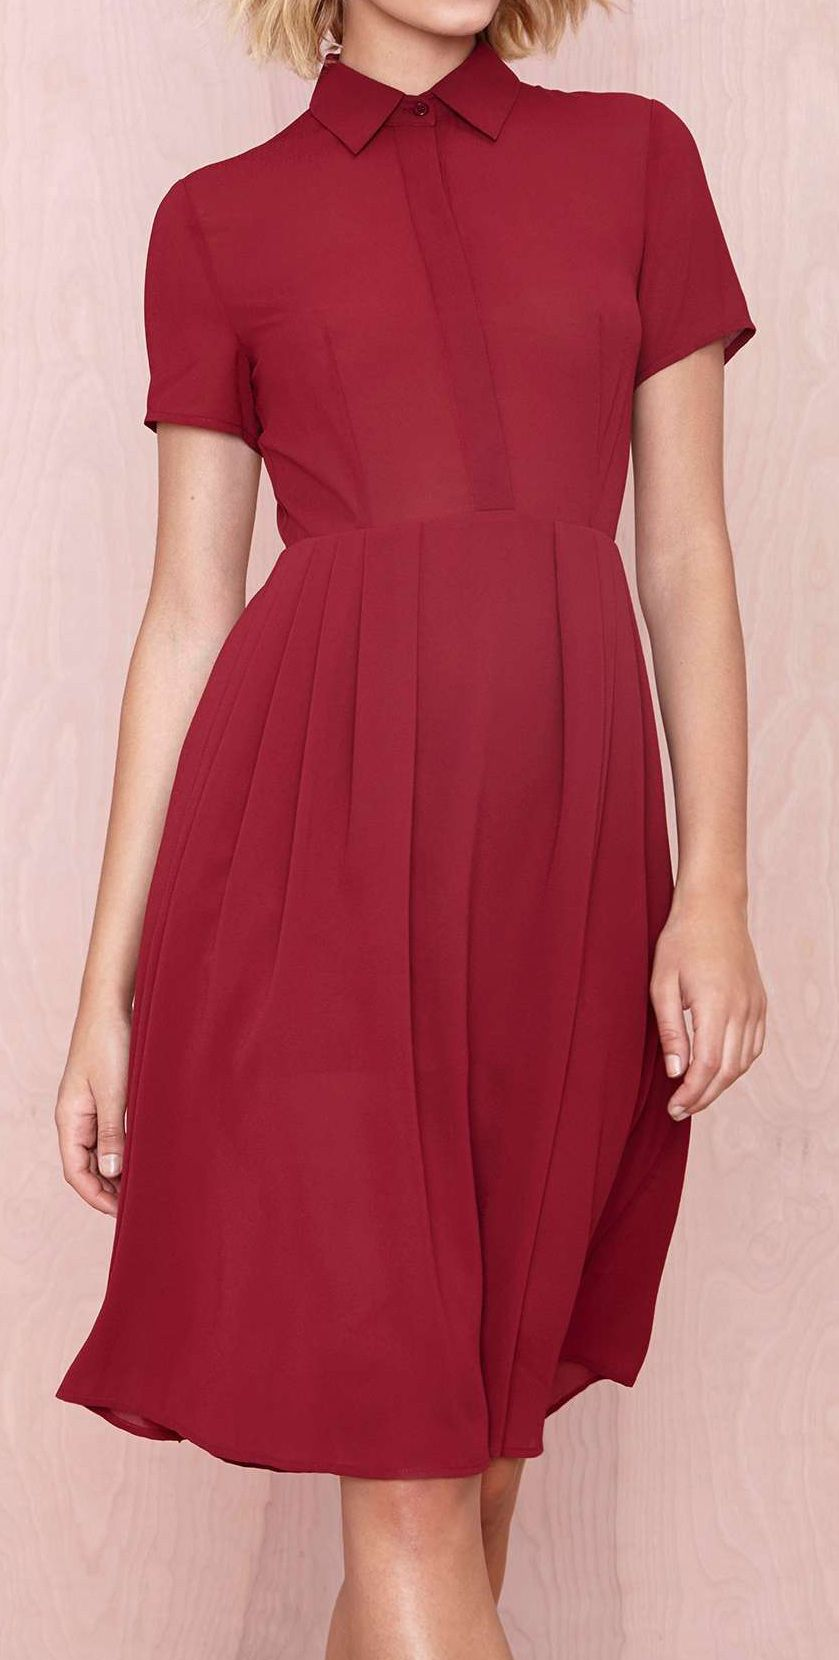 Crimson midi dress dresses pinterest midi dresses clothes and